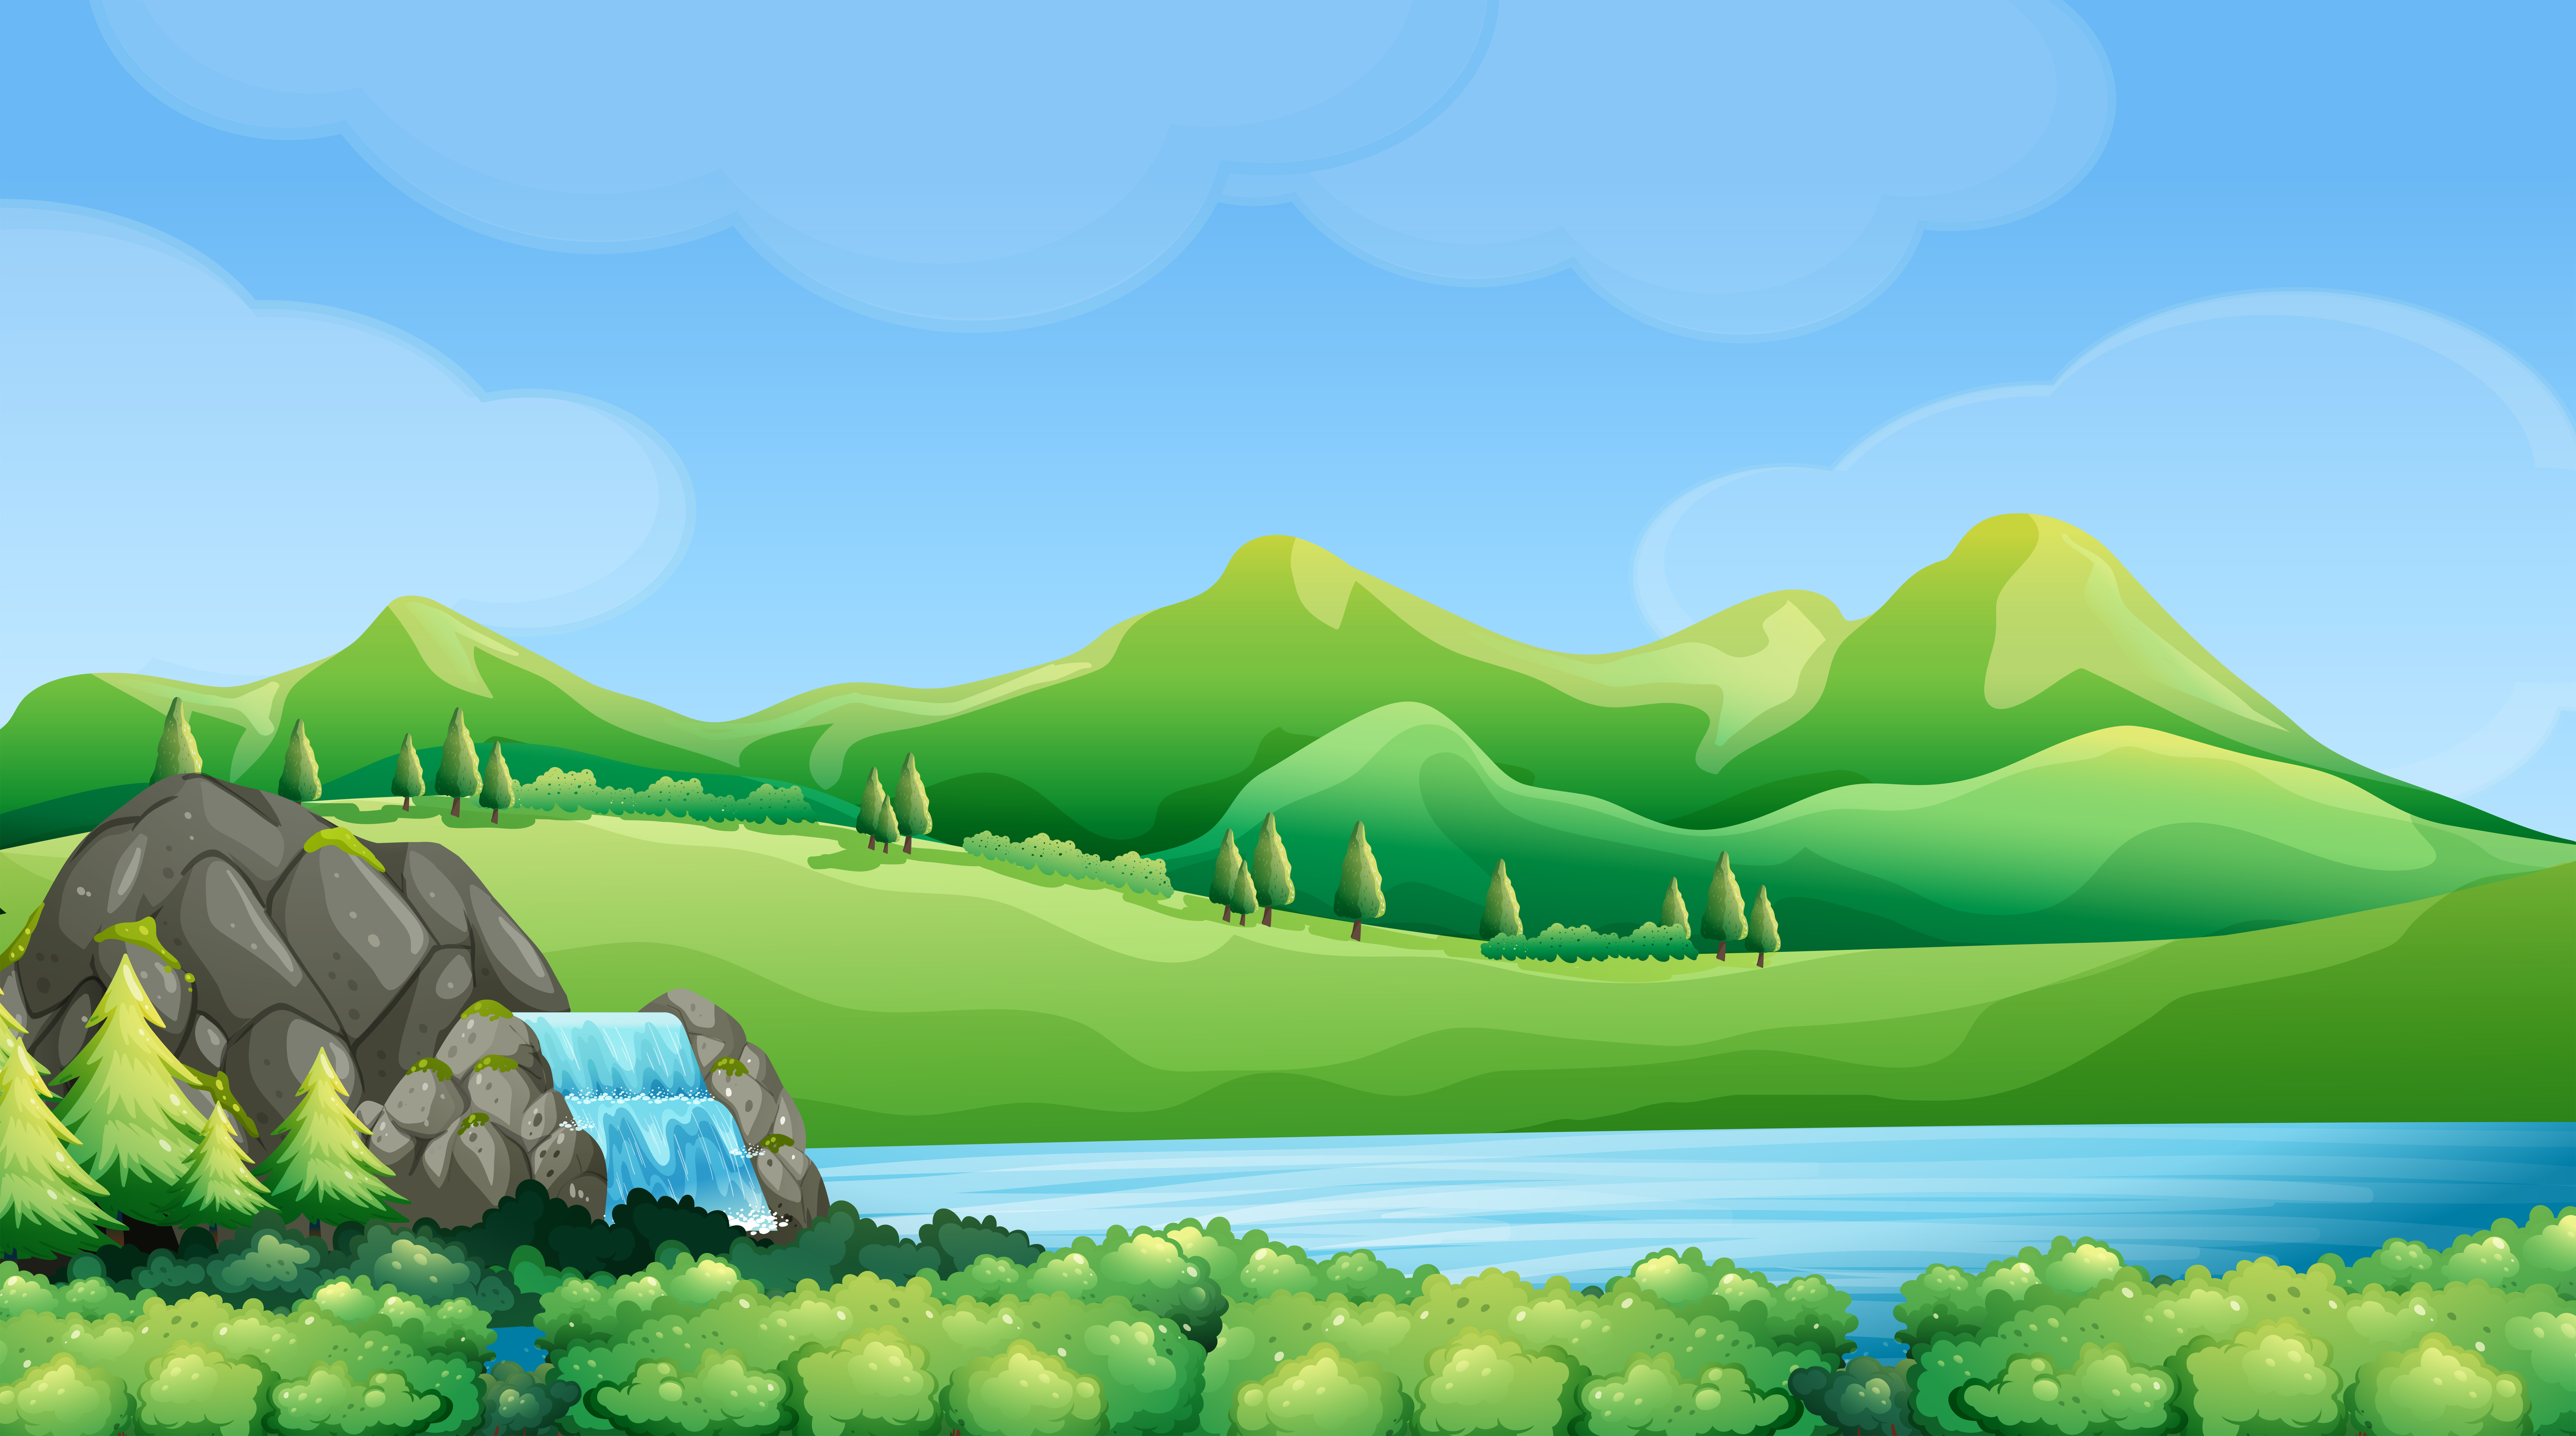 nature waterfall scene mountains vector clipart illustration illustrations water background graphics landscape cartoon dreamstime vectors keywords related